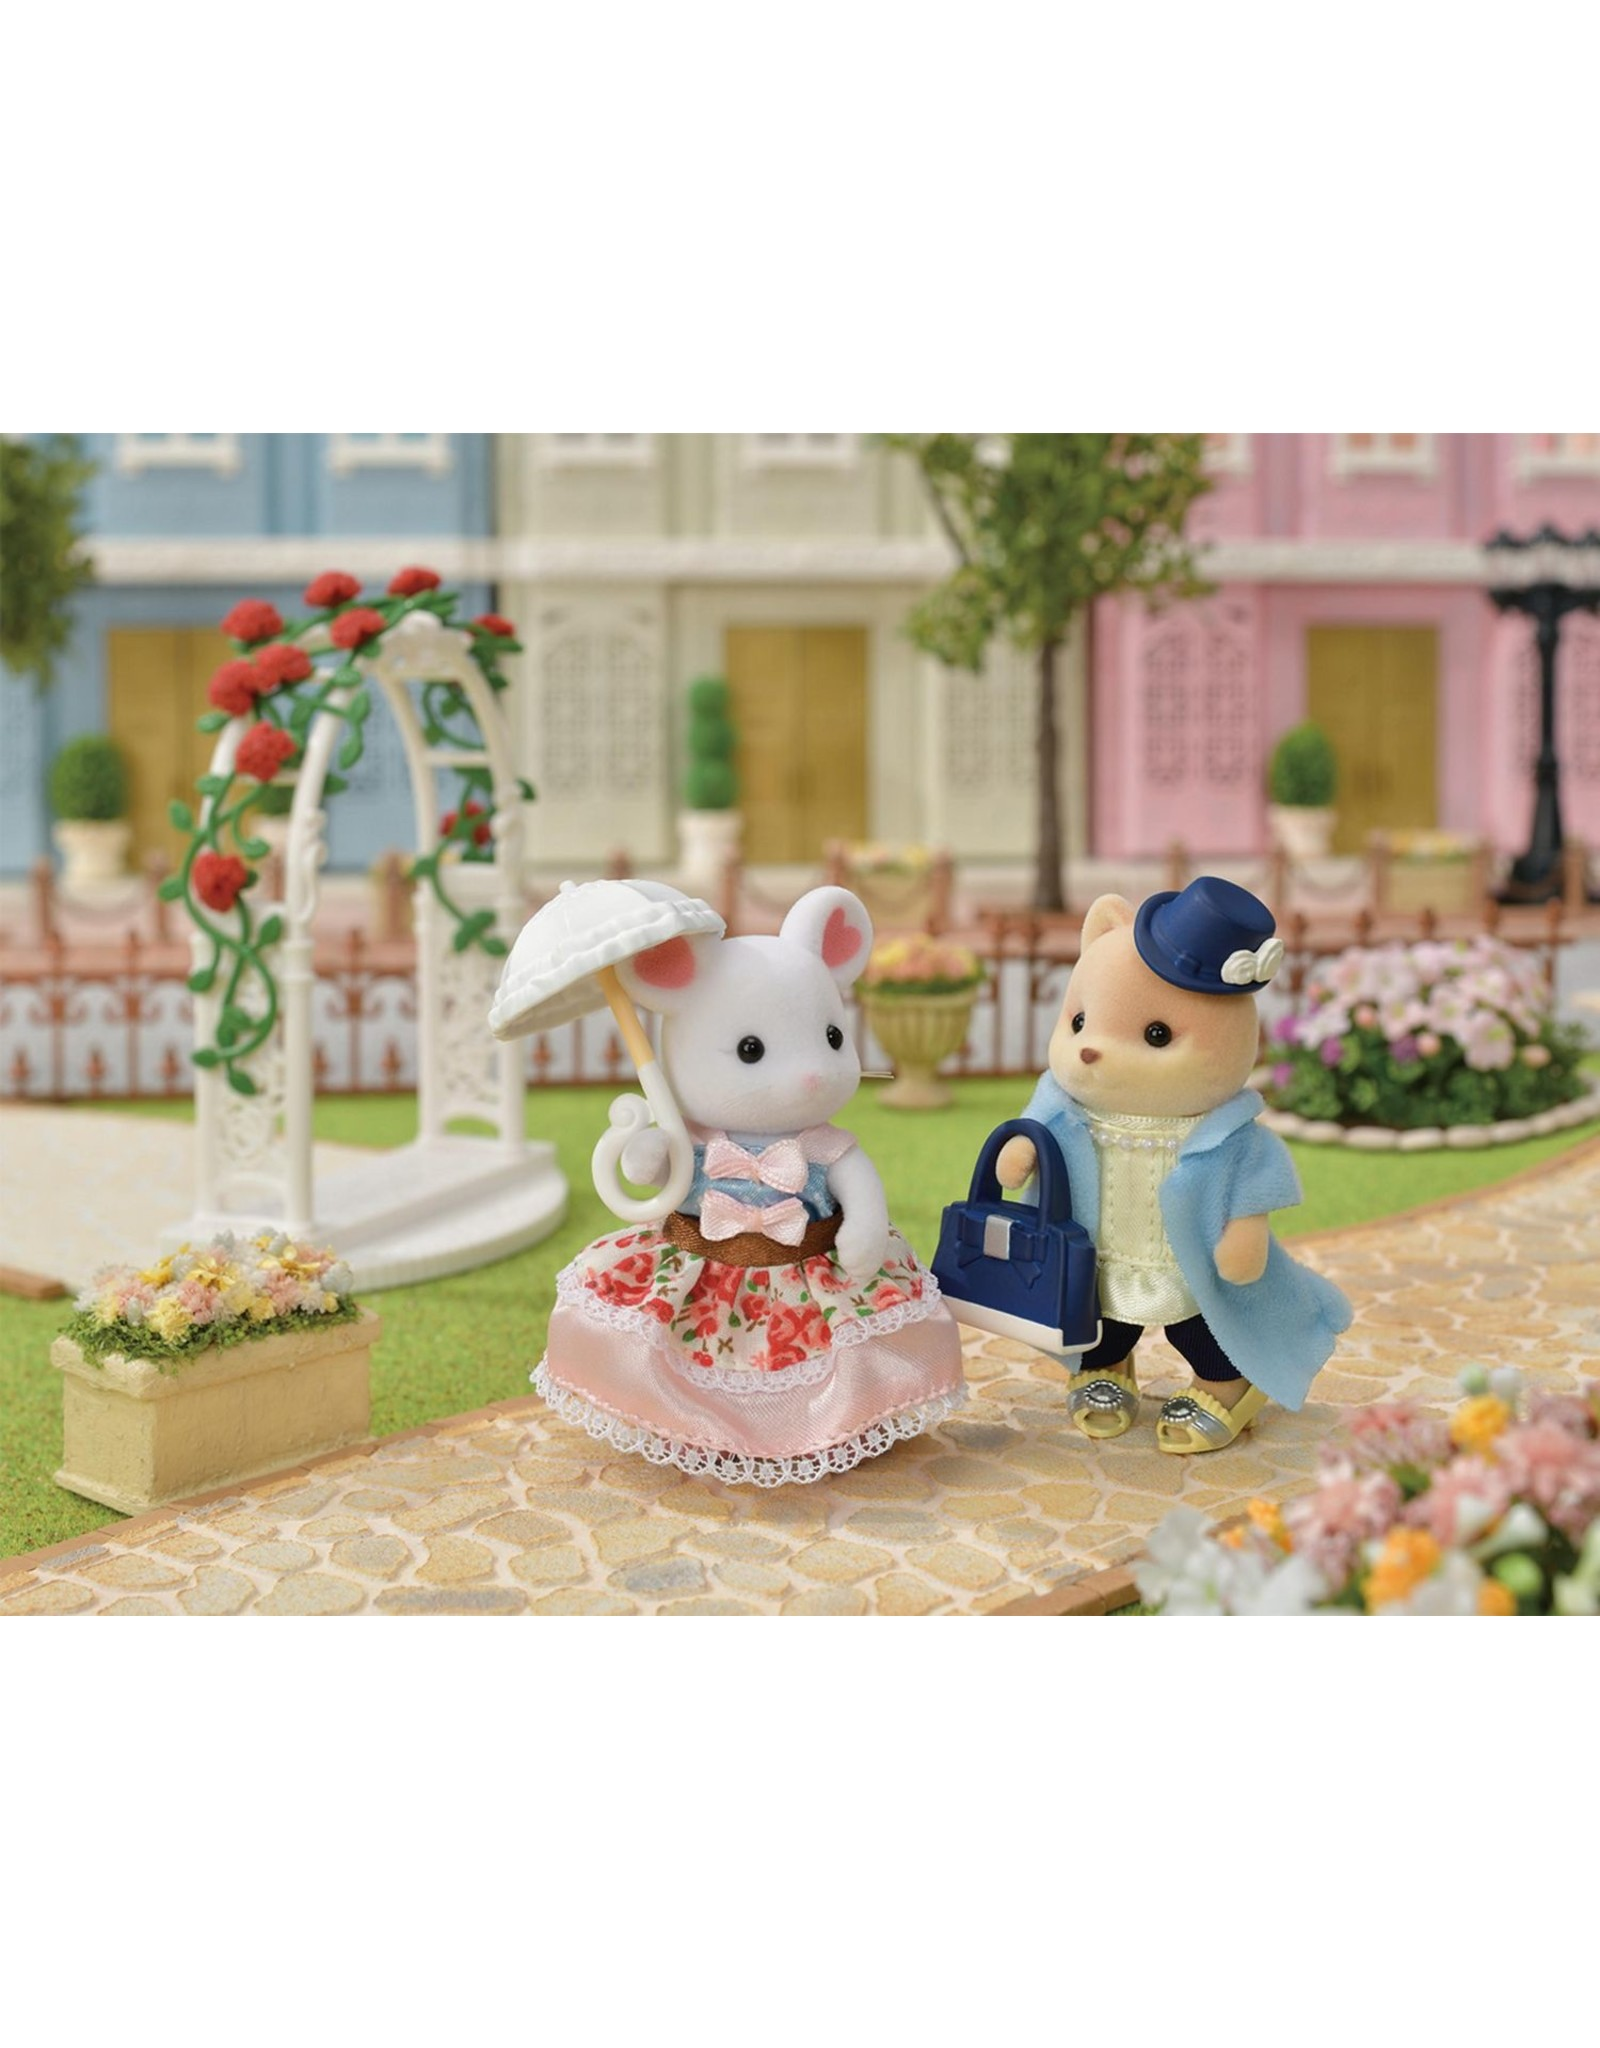 Calico Critters Calico Critters Marshmallow Mouse Fashion Playset, Sugar Sweet Set